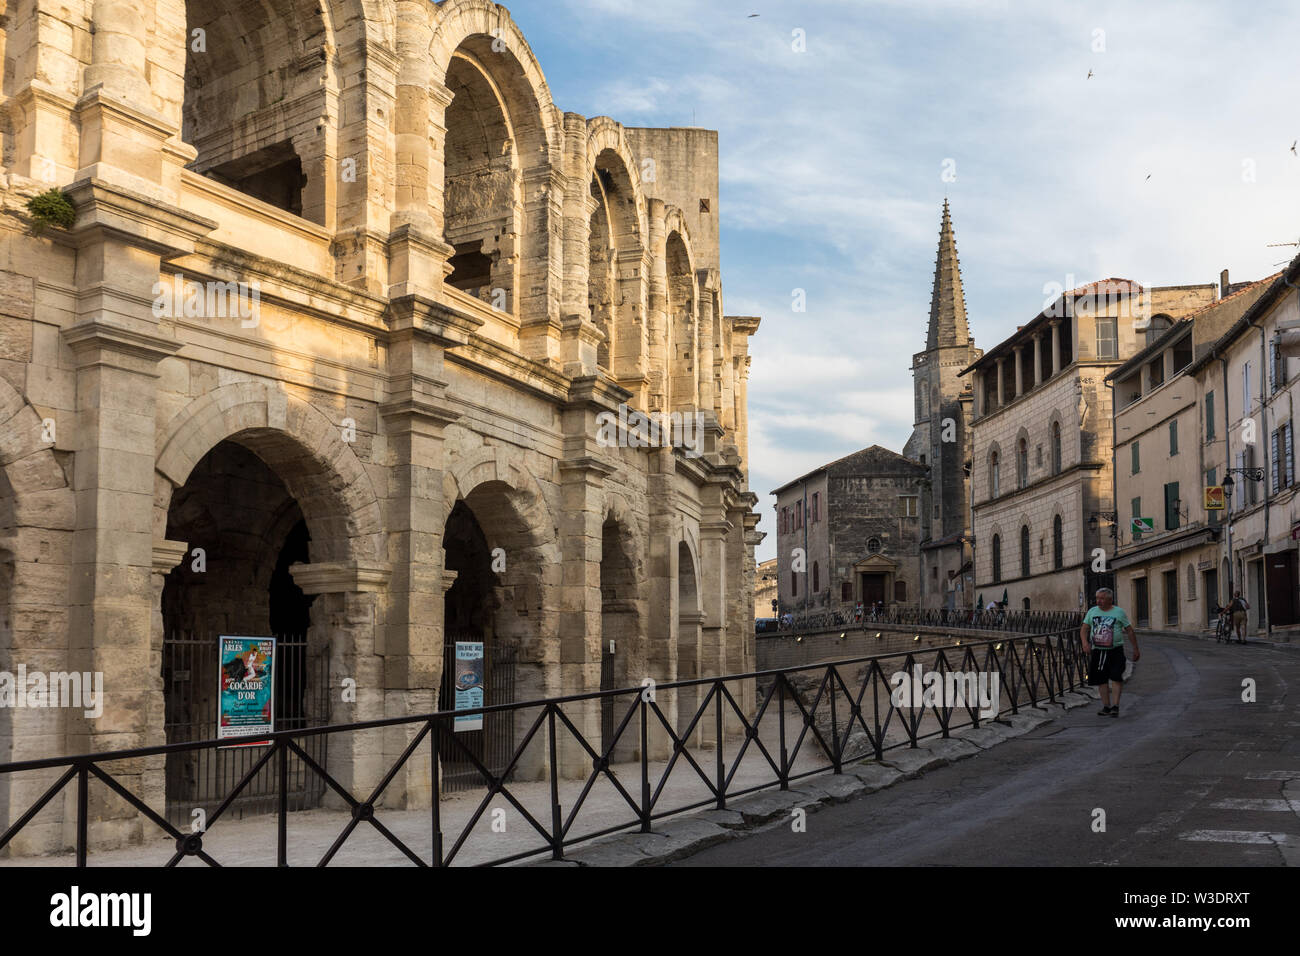 Arles, France - June 24, 2017: The Roman Amphitheater in the old town of Arles in Provence in the South of France. - Stock Image